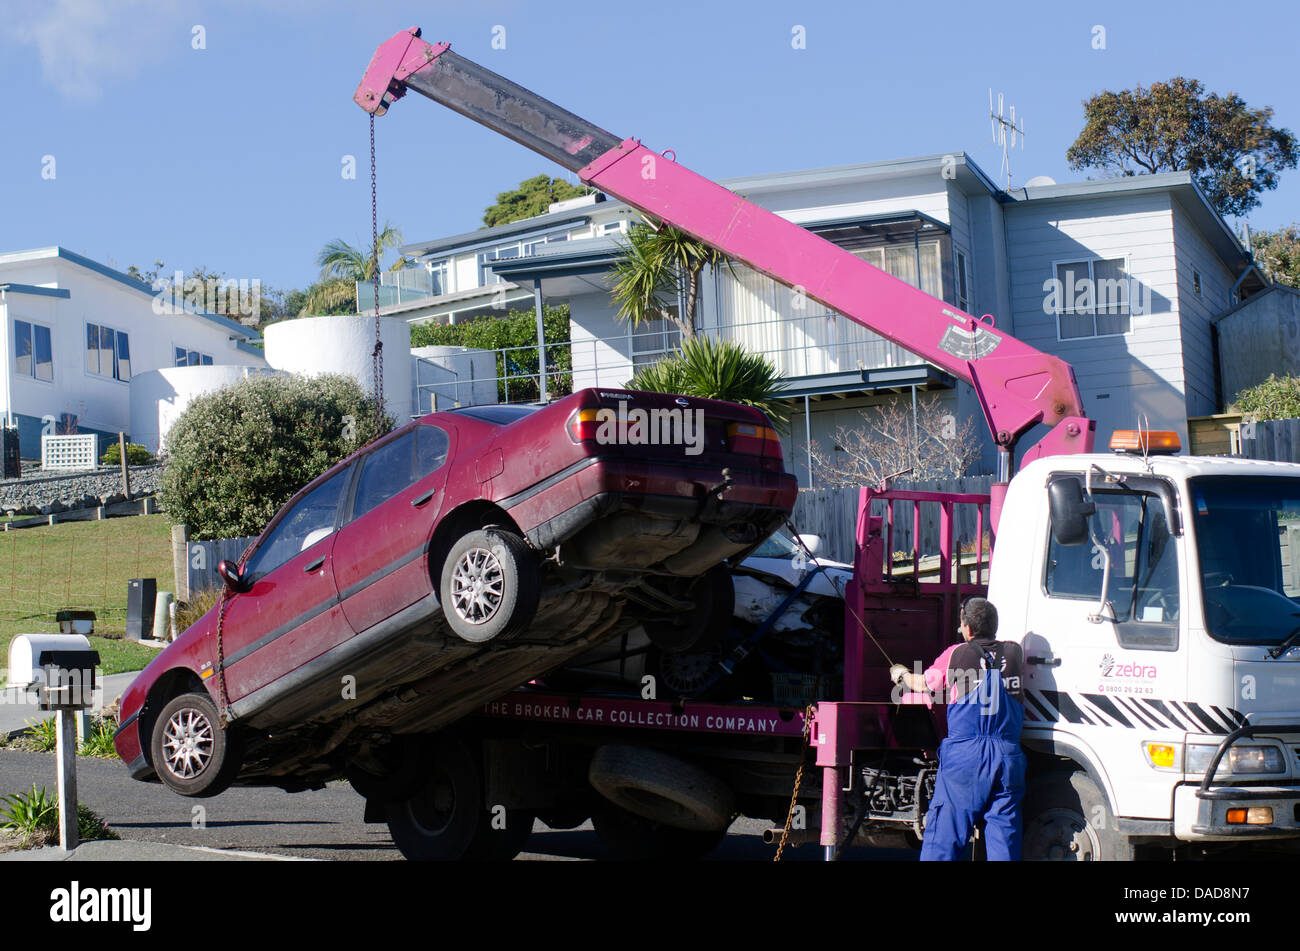 Man towing damaged car over a tow truck on July 01 2013.Many tow companies have the capability to store vehicles Stock Photo